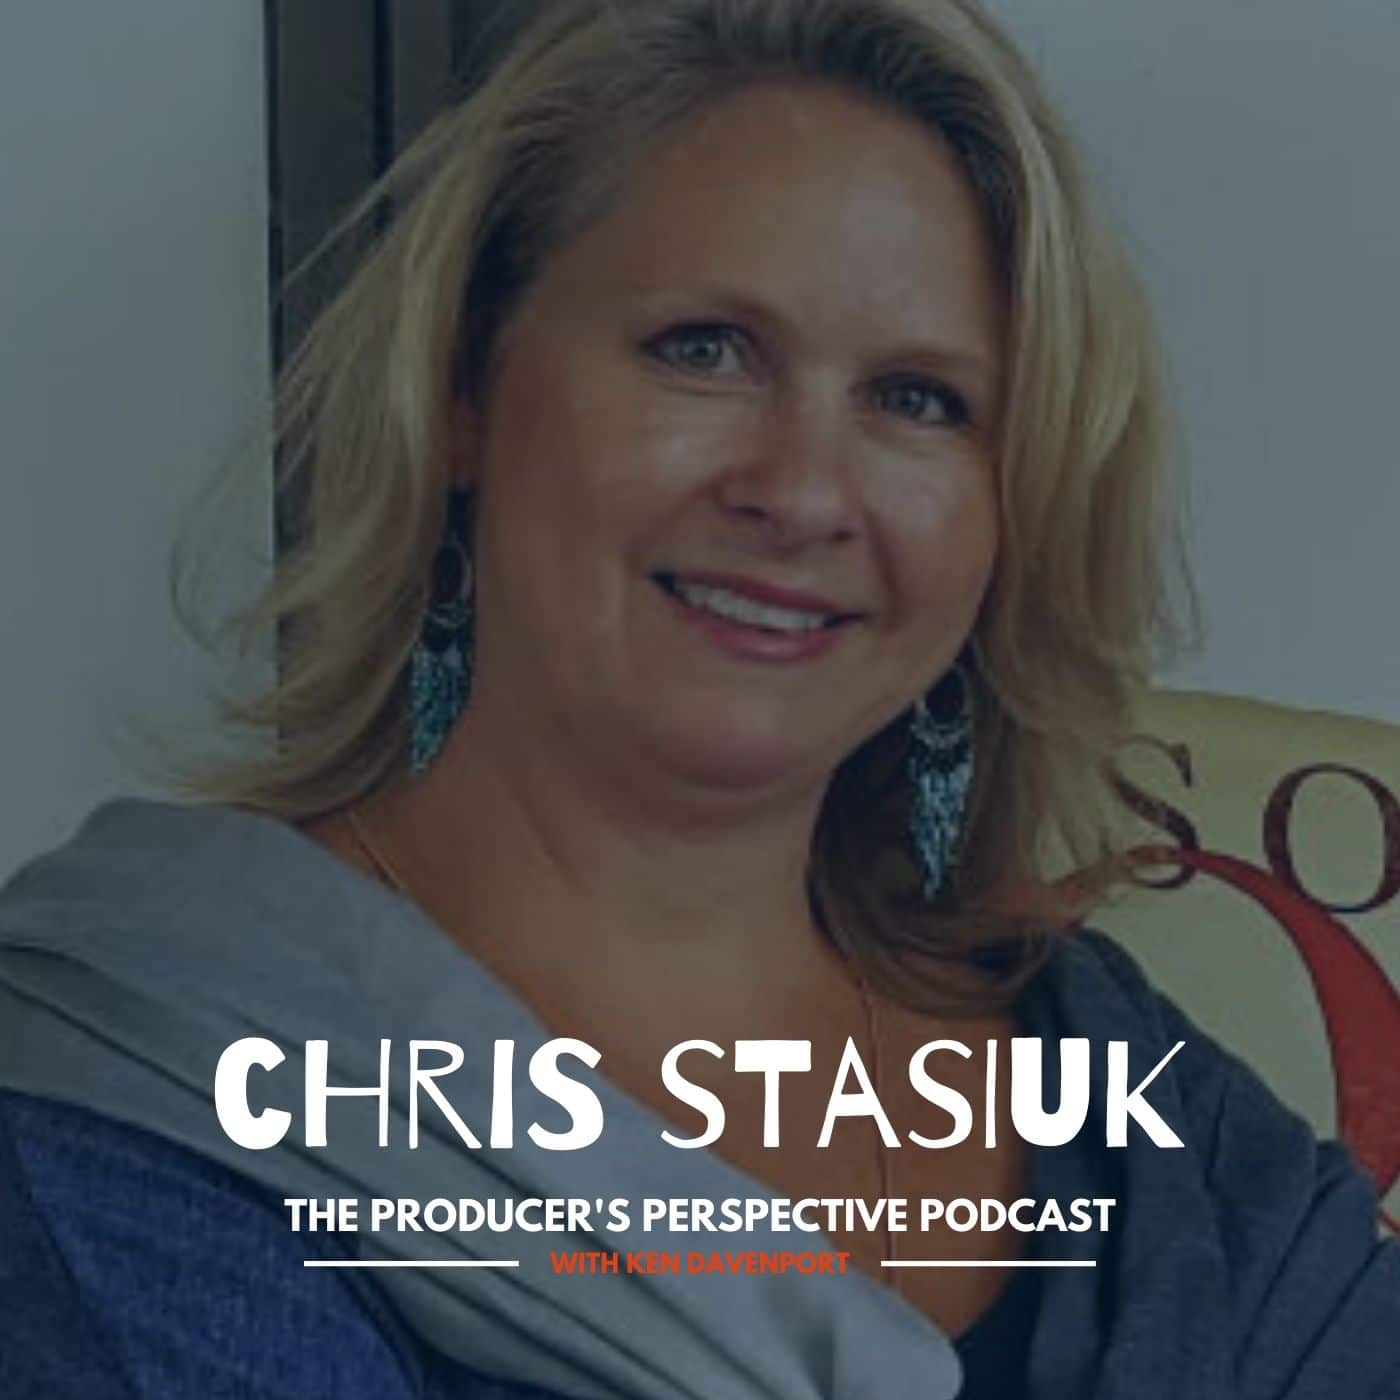 Ken Davenport's The Producer's Perspective Podcast Episode 90 - Chris Stasiuk